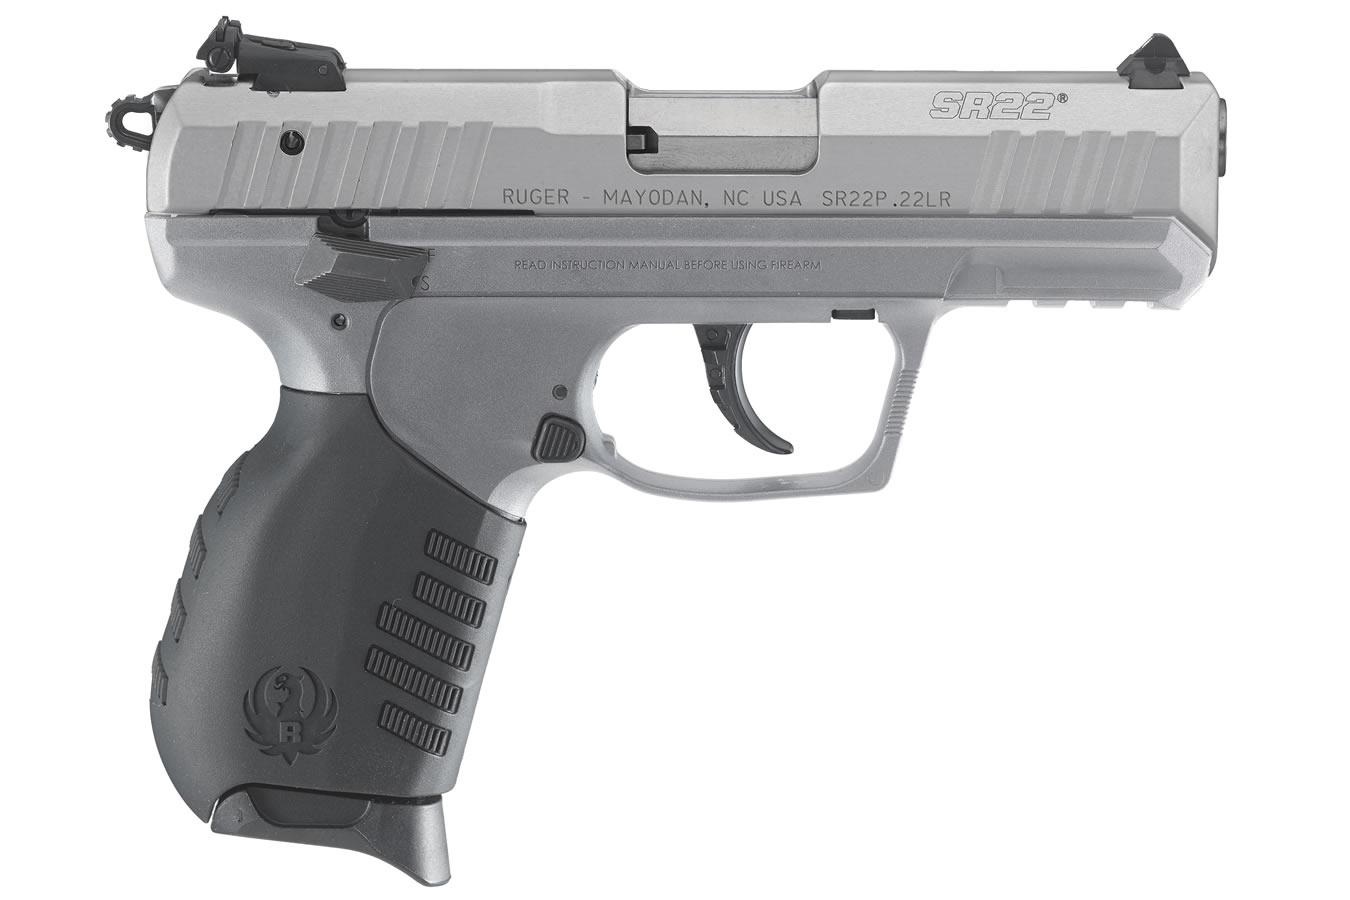 No. 19 Best Selling: RUGER SR22 22LR SAVAGE STAINLESS CERAKOTE